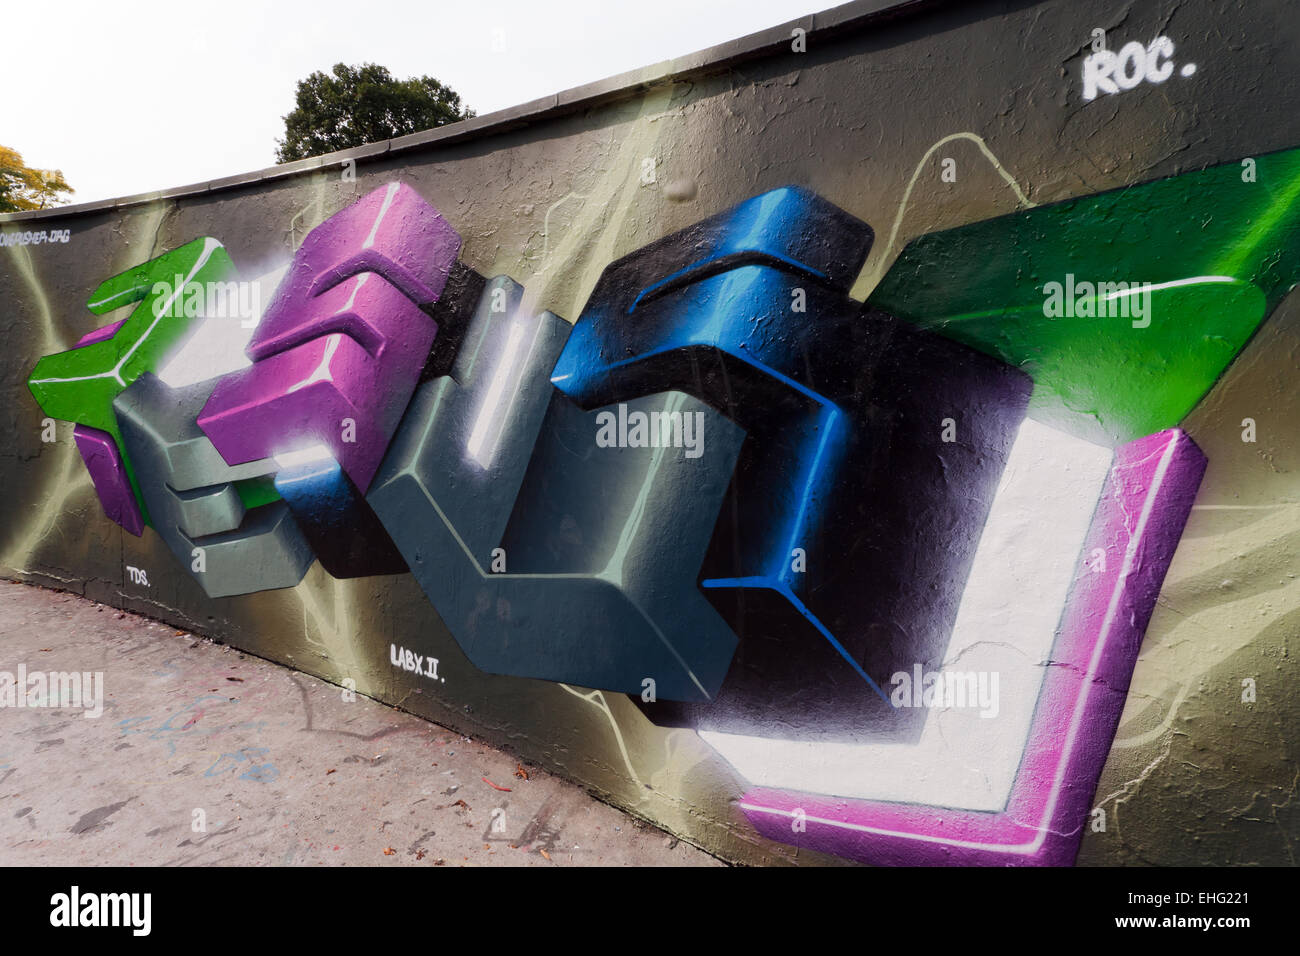 Close-up view of some Graffiti art, in the Skate-park,  Alaxandra Park, Haringey, London - Stock Image